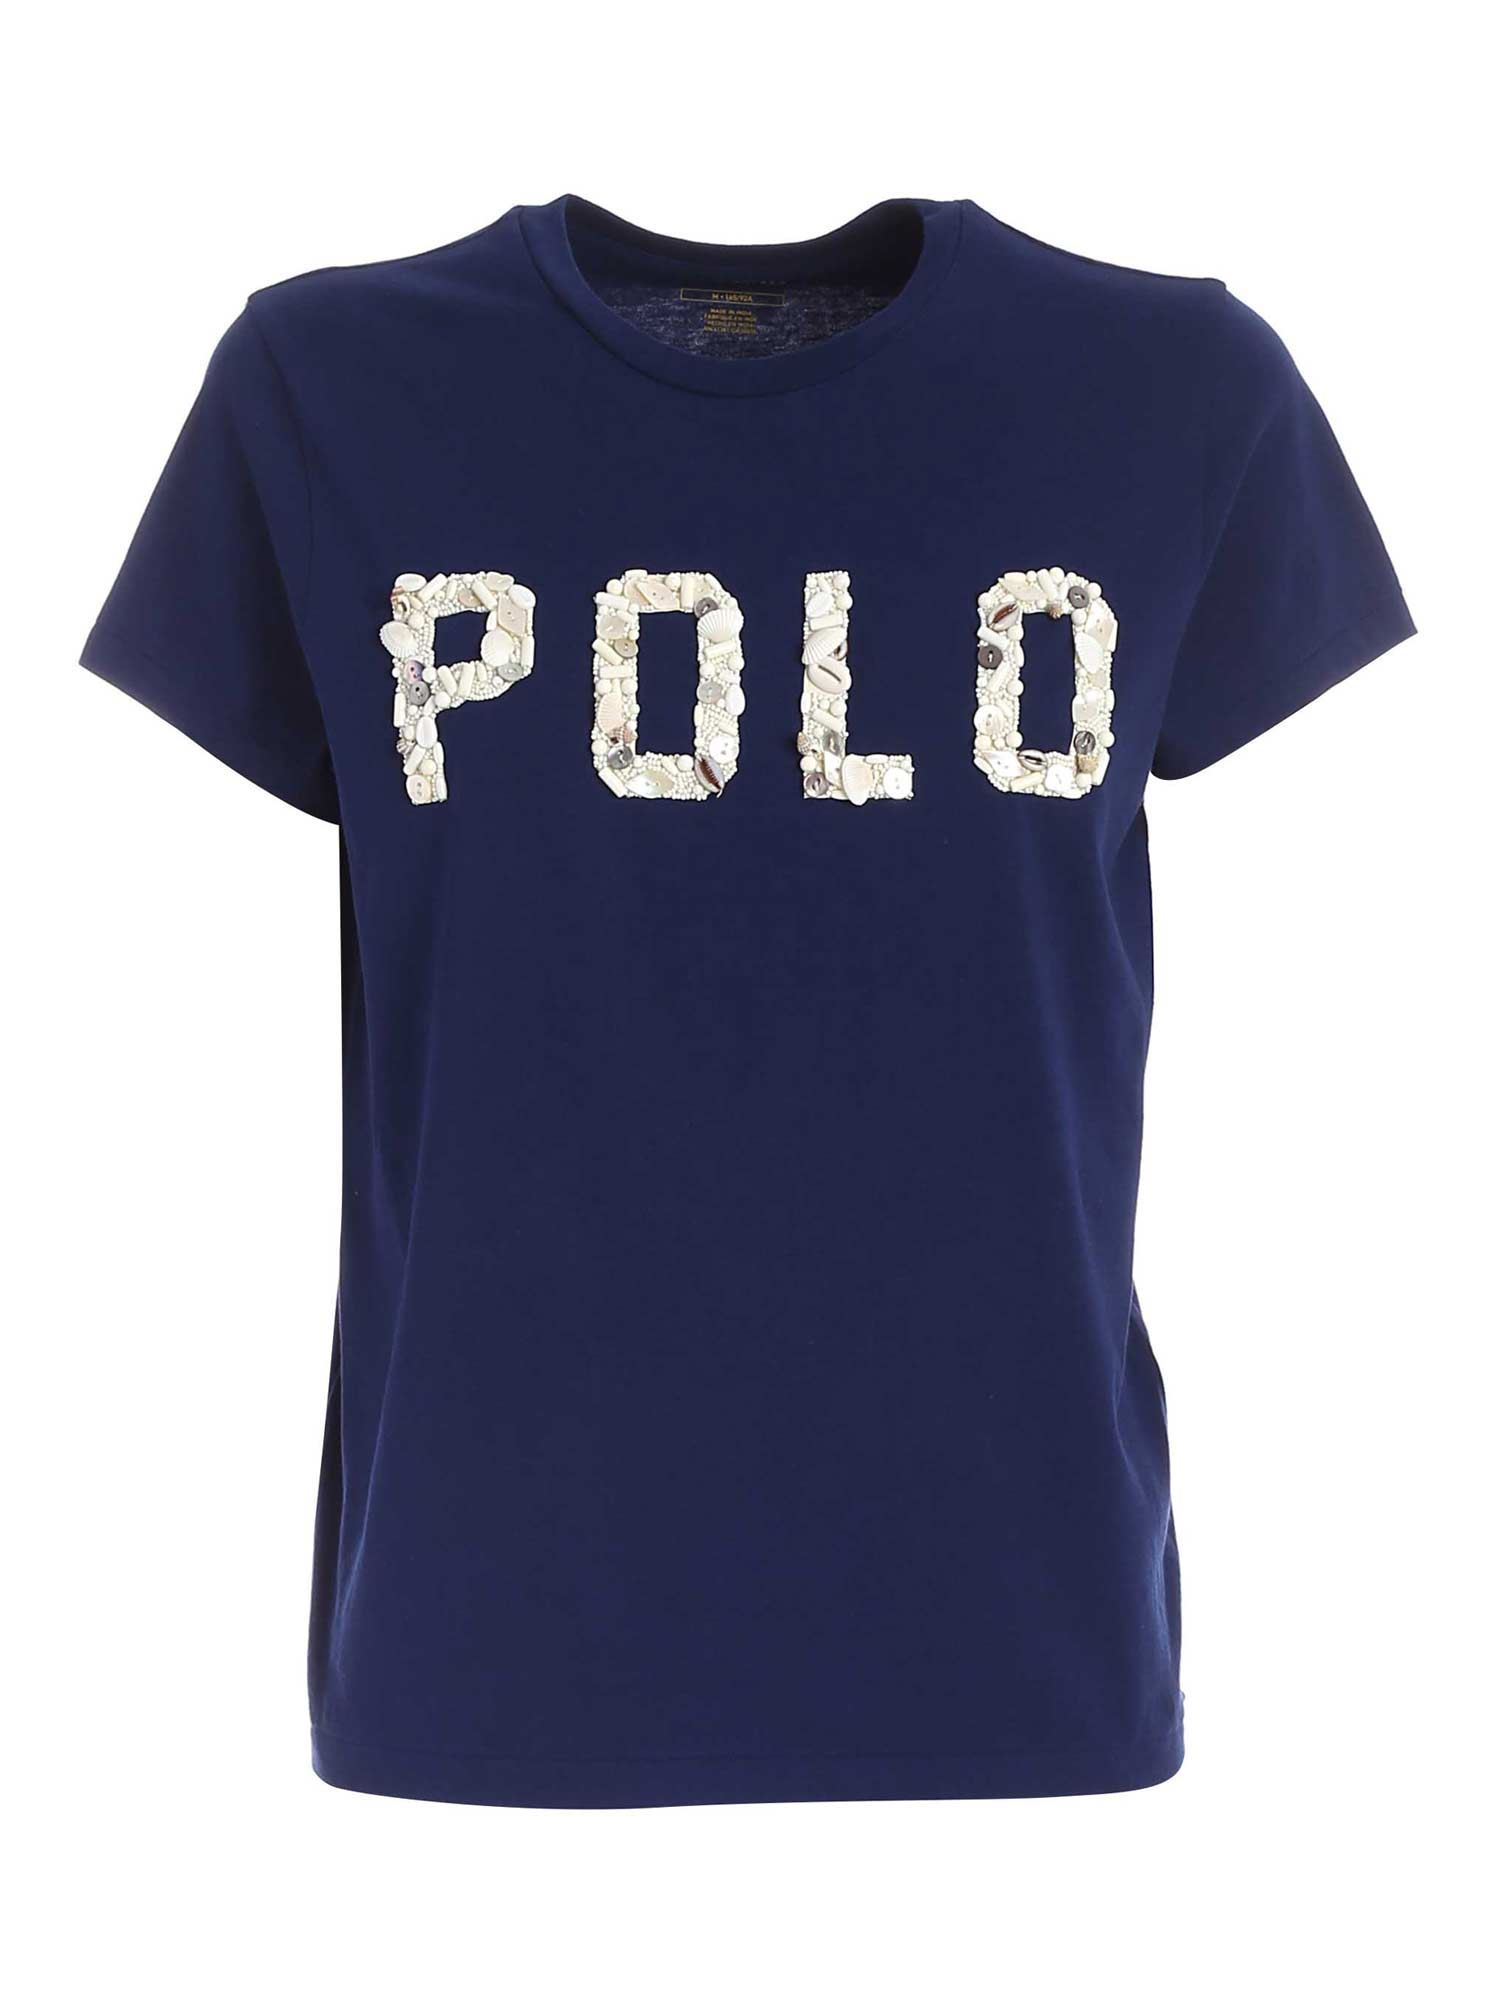 Polo Ralph Lauren POLO RALPH LAUREN DECORATED LOGO T-SHIRT IN BLUE